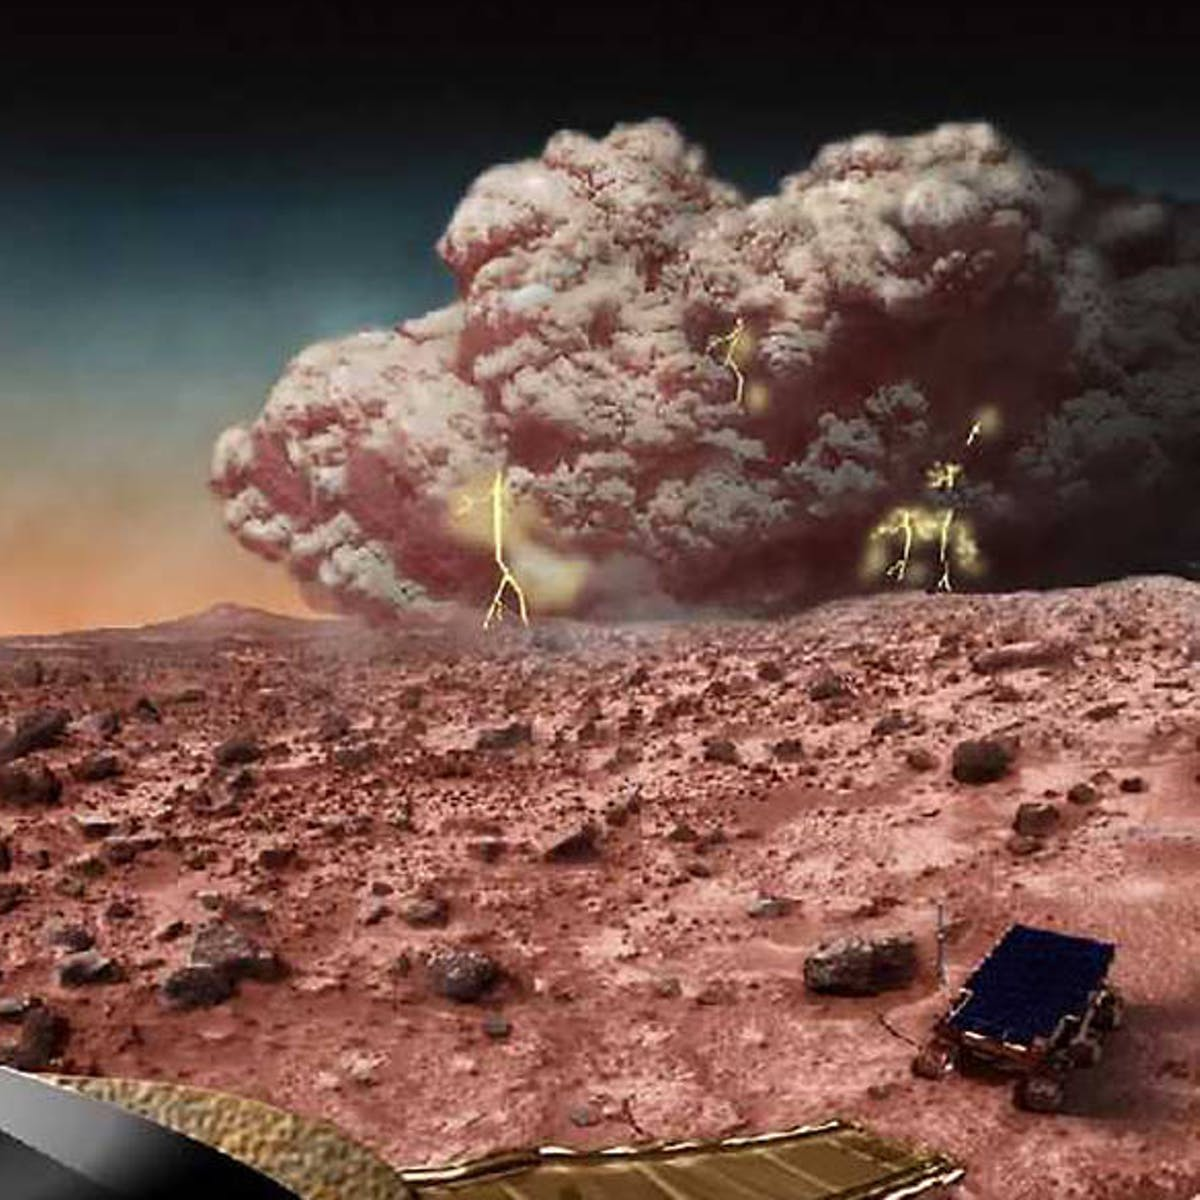 Massive dust towers may have dried up water supplies on Mars